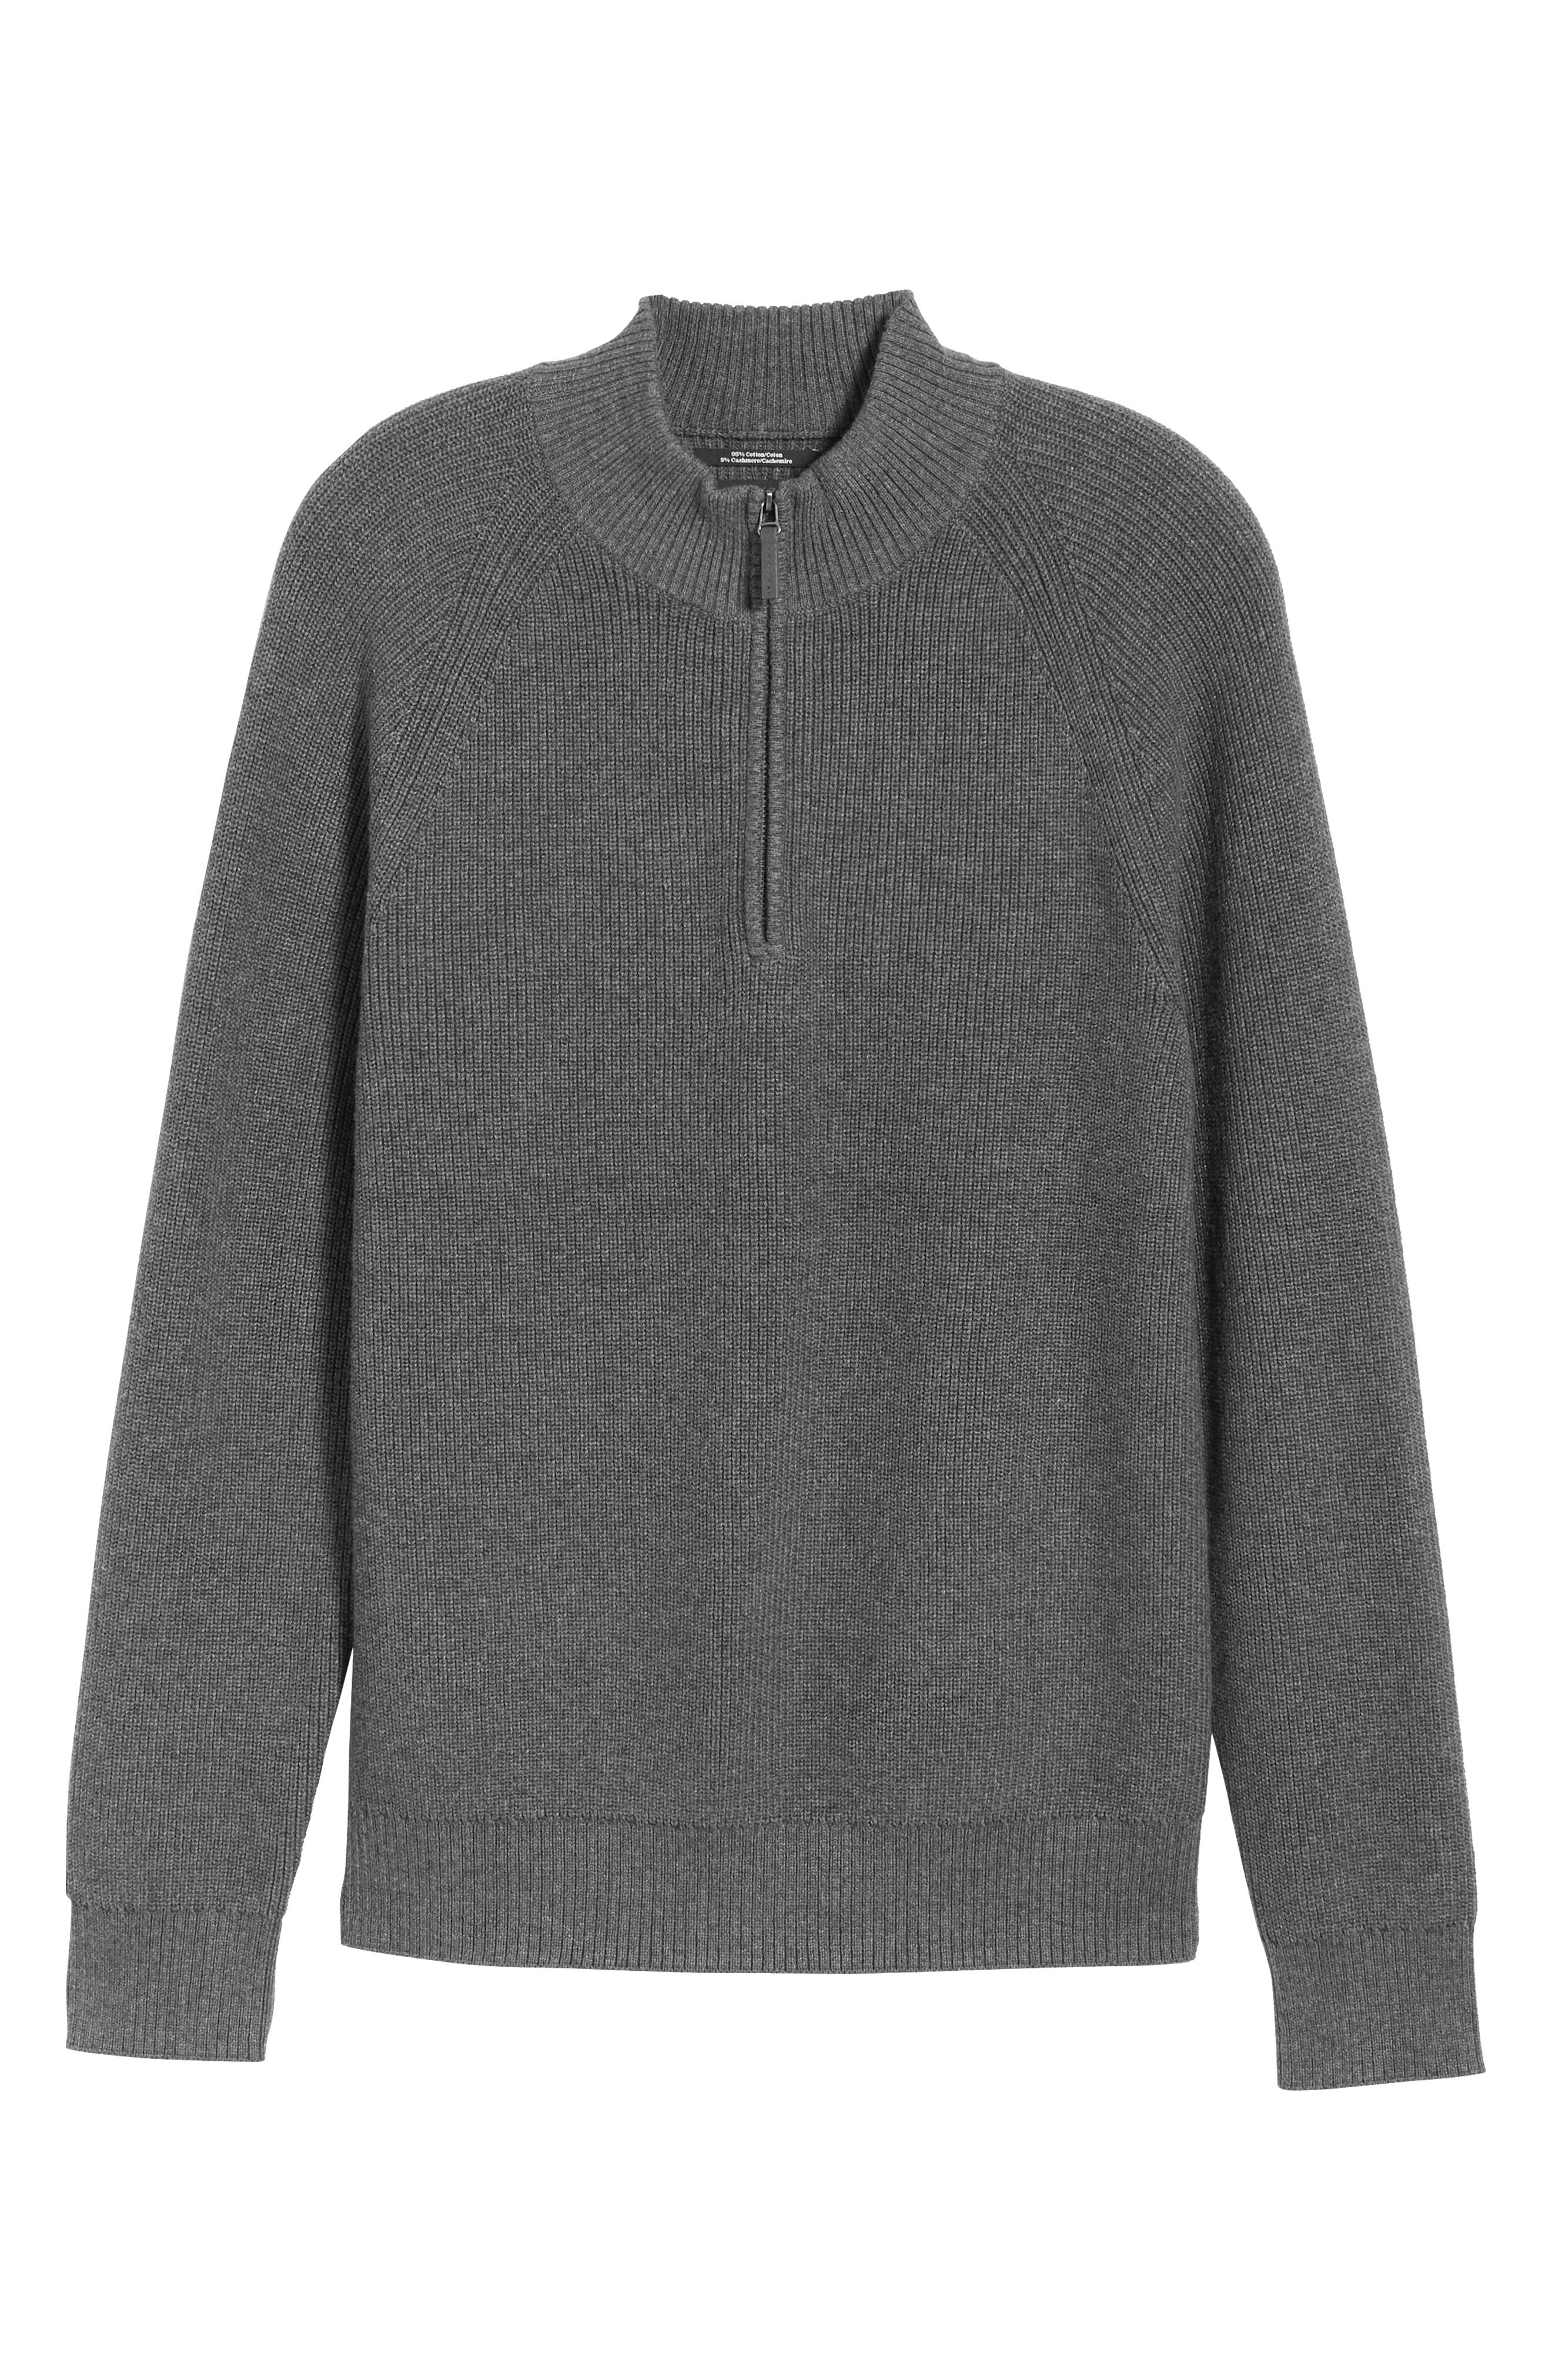 Ribbed Quarter Zip Sweater,                             Alternate thumbnail 6, color,                             GREY CASTLEROCK